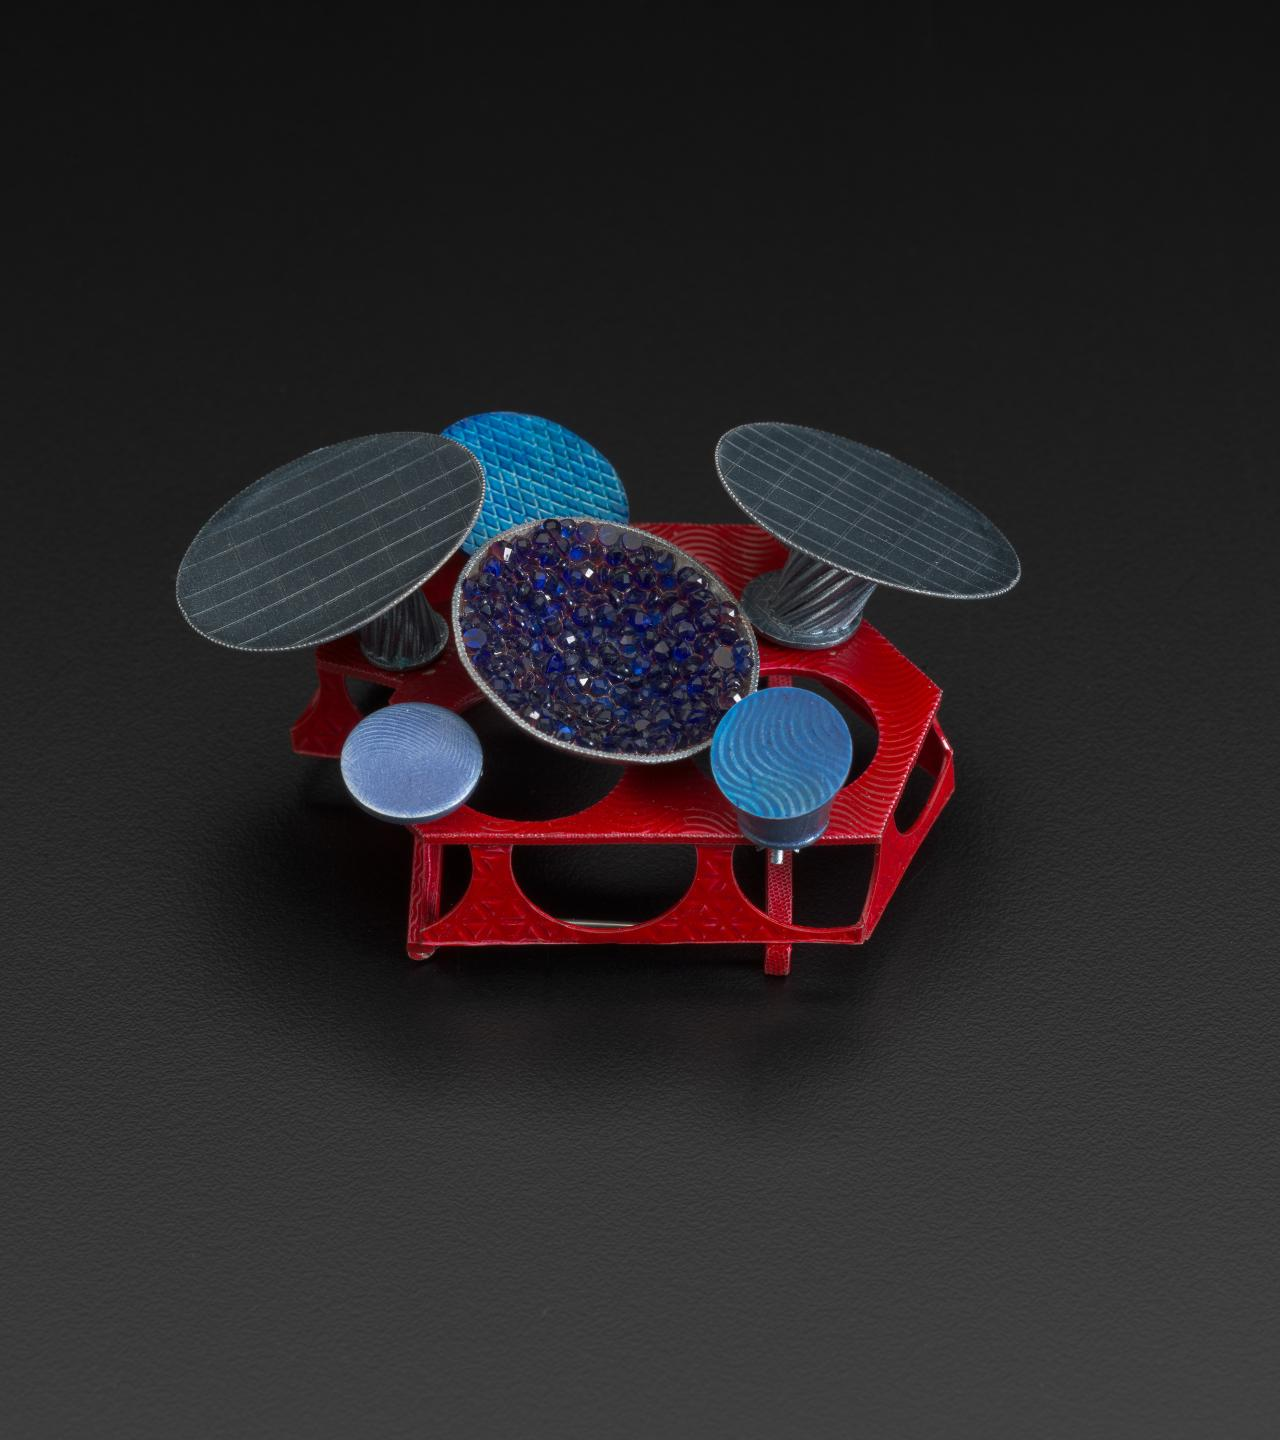 Red blue brooch